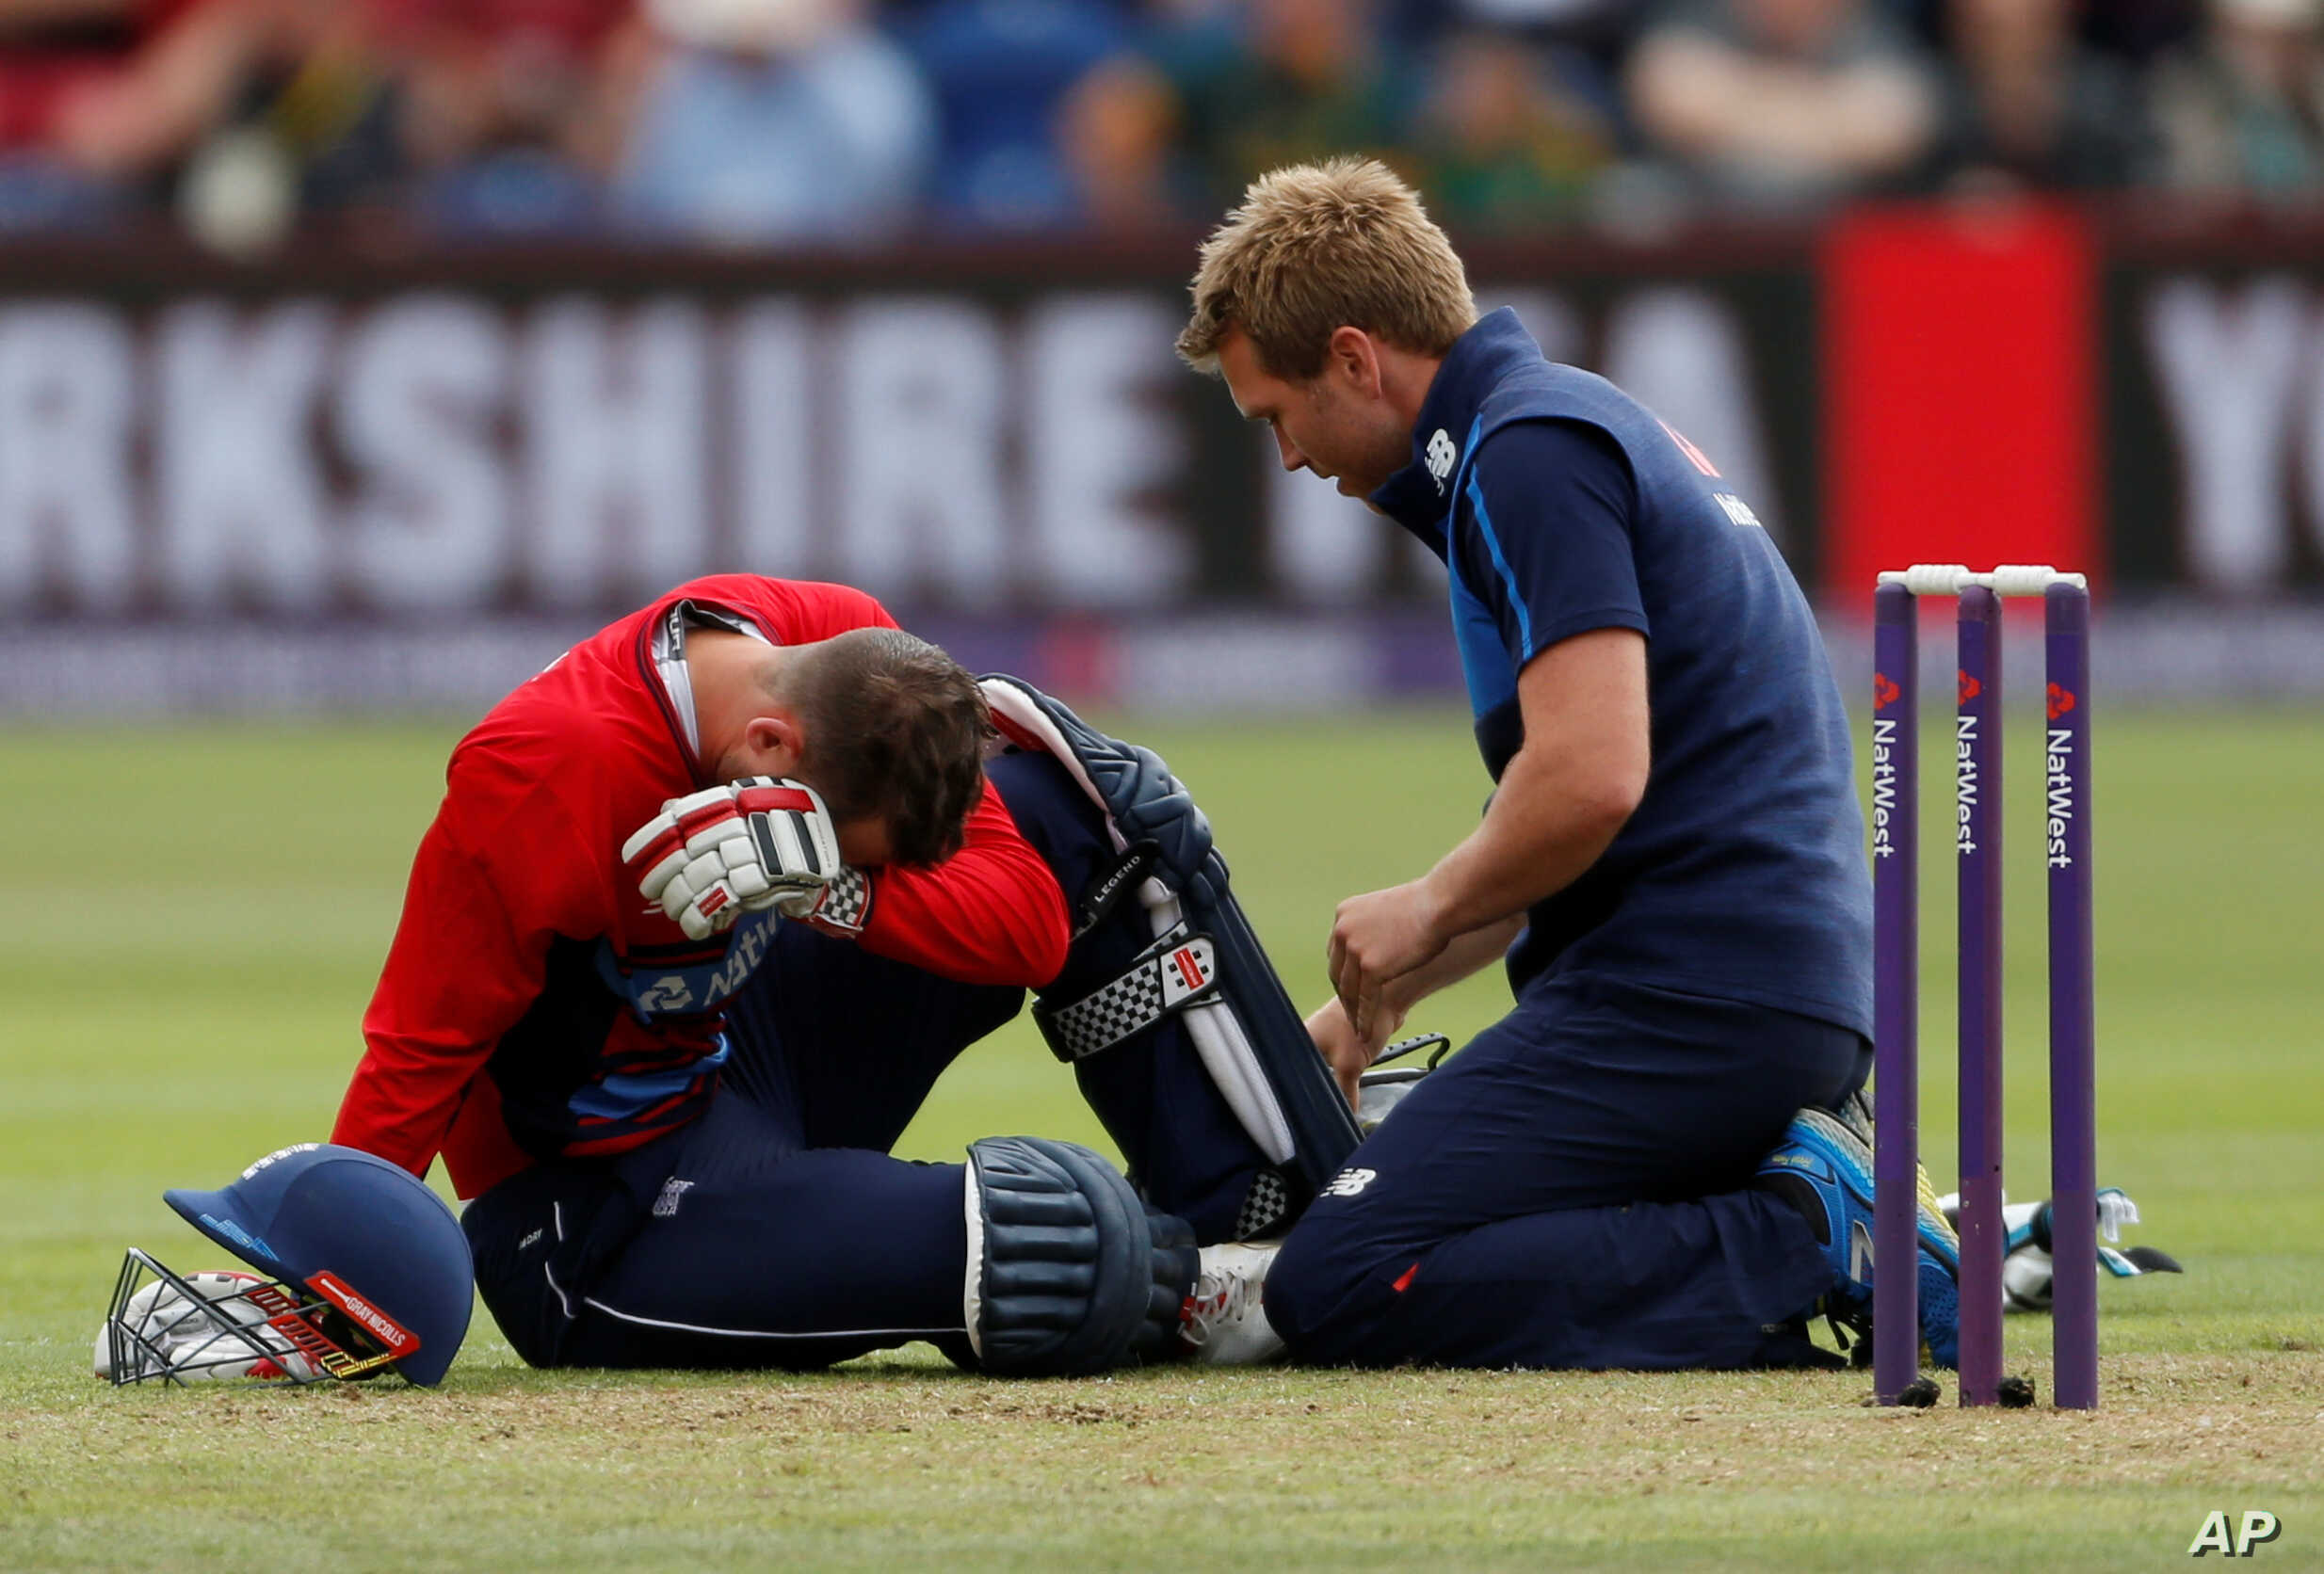 England's Alex Hales is tended to after sustaining an injury to his knee while playing South Africa in Cardiff, June 25, 2017.